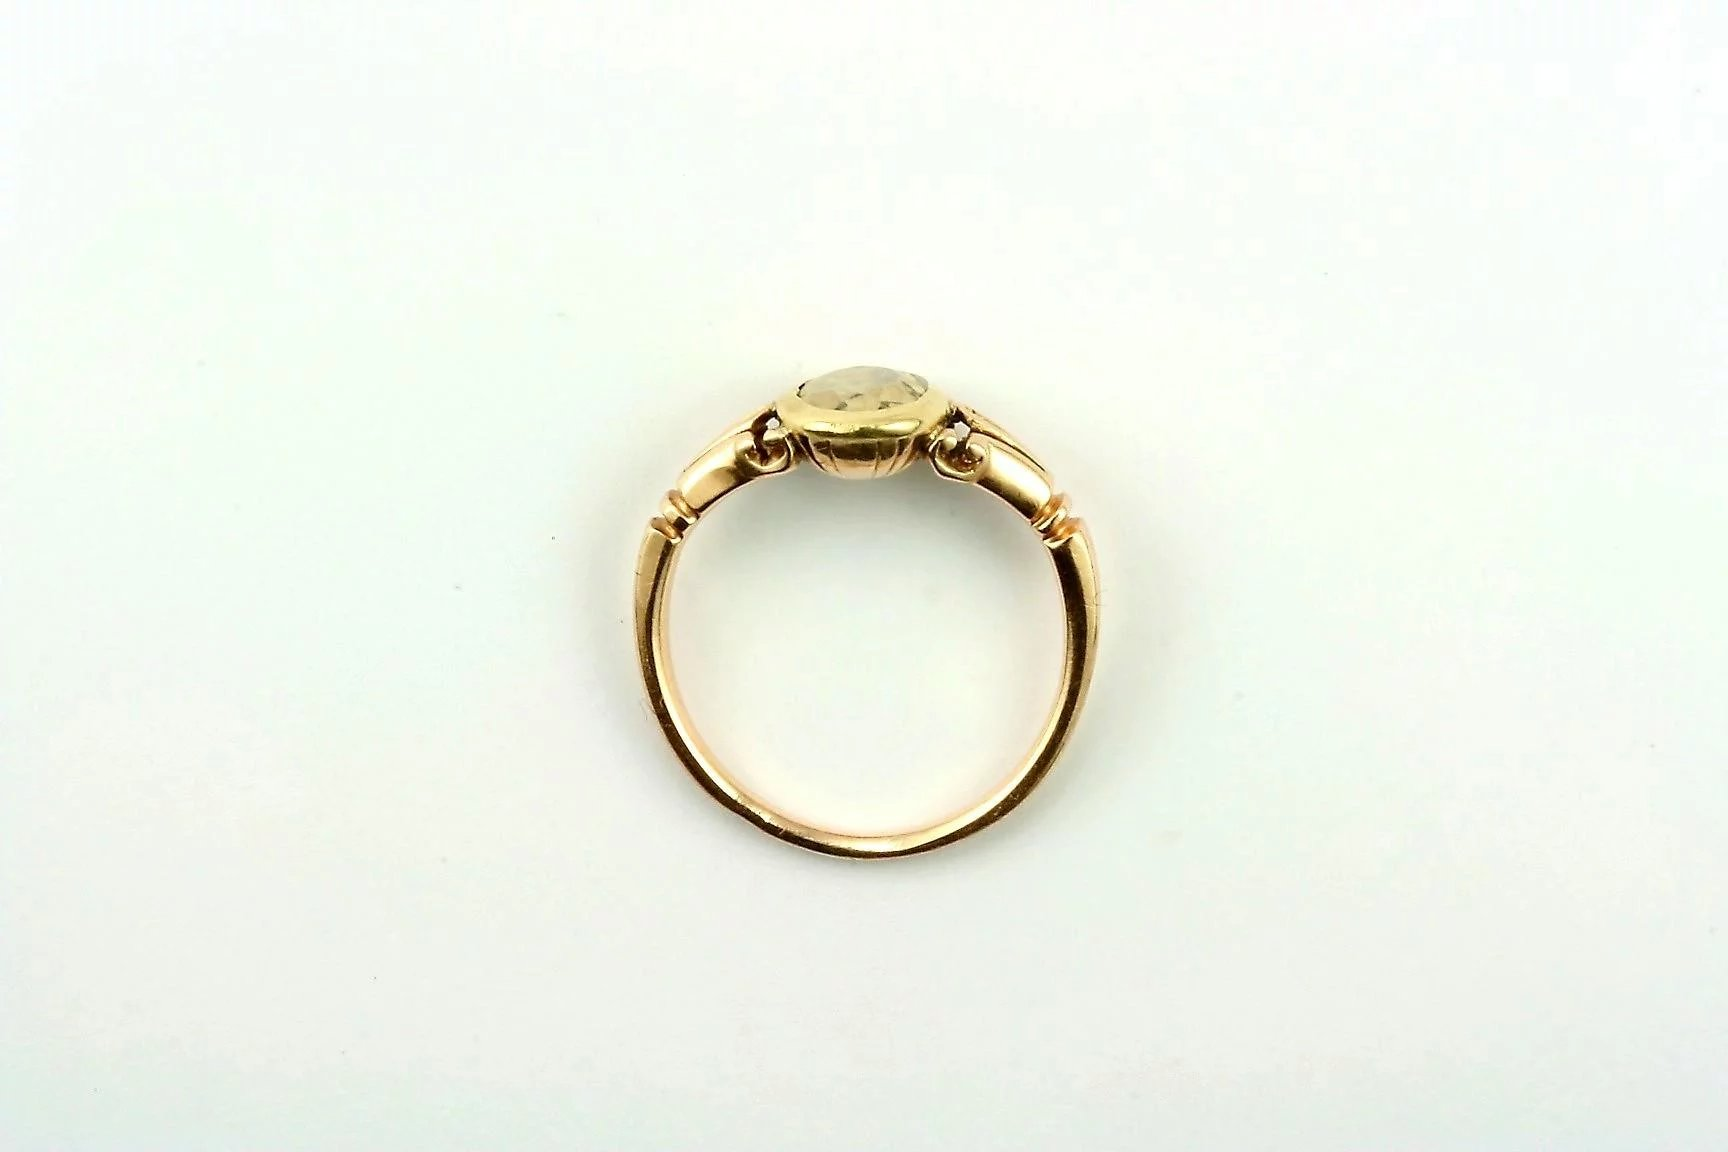 a lane ring friends antiques rings s butter true gift posy century wedding friend products